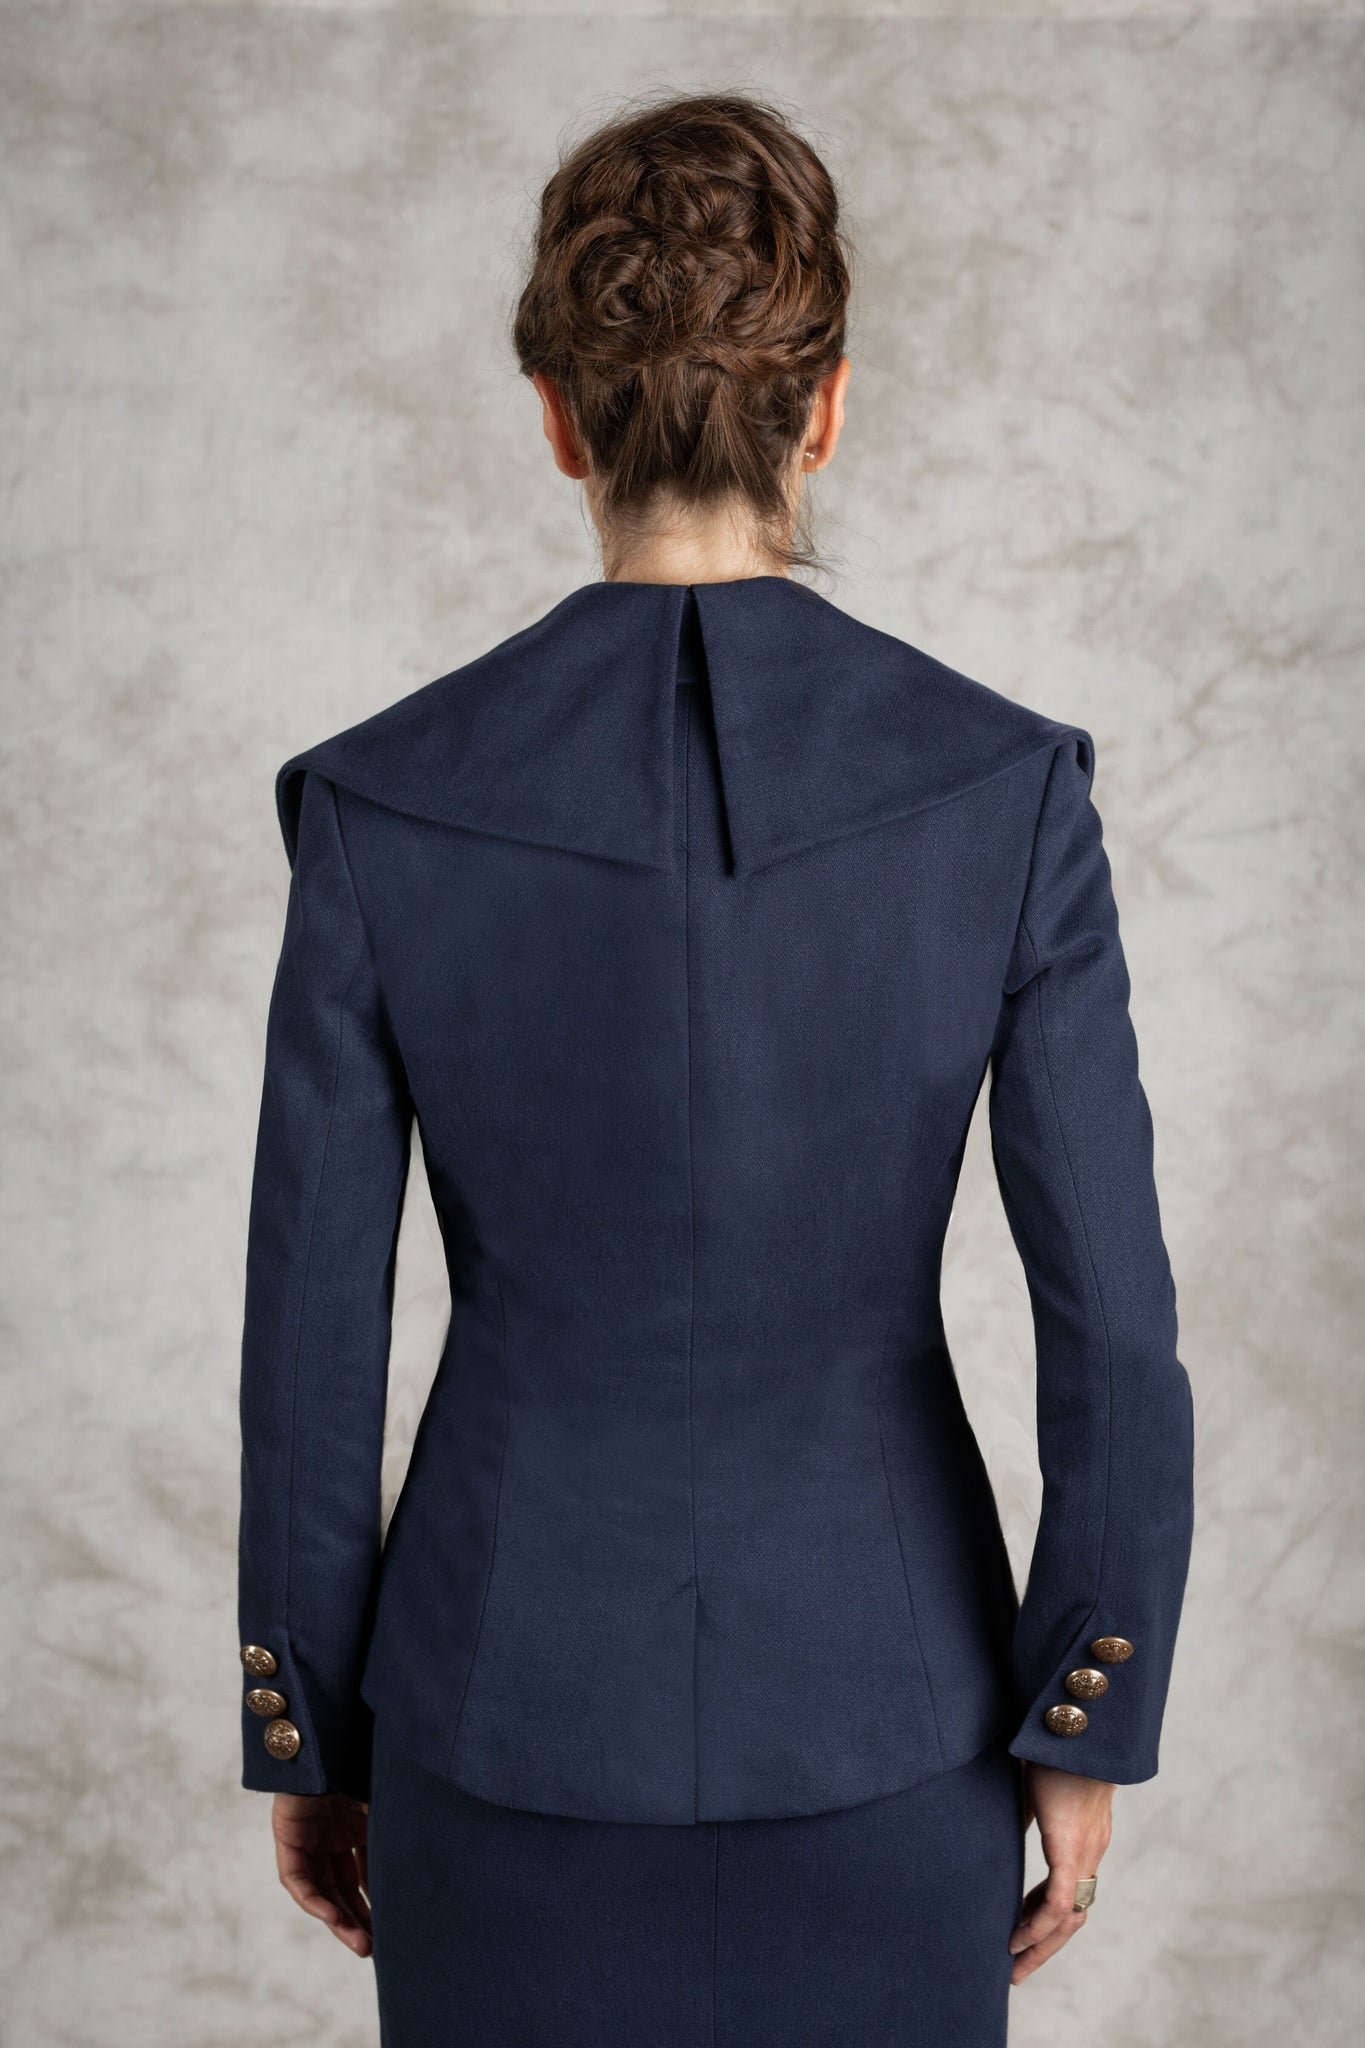 The Doyenne Jacket